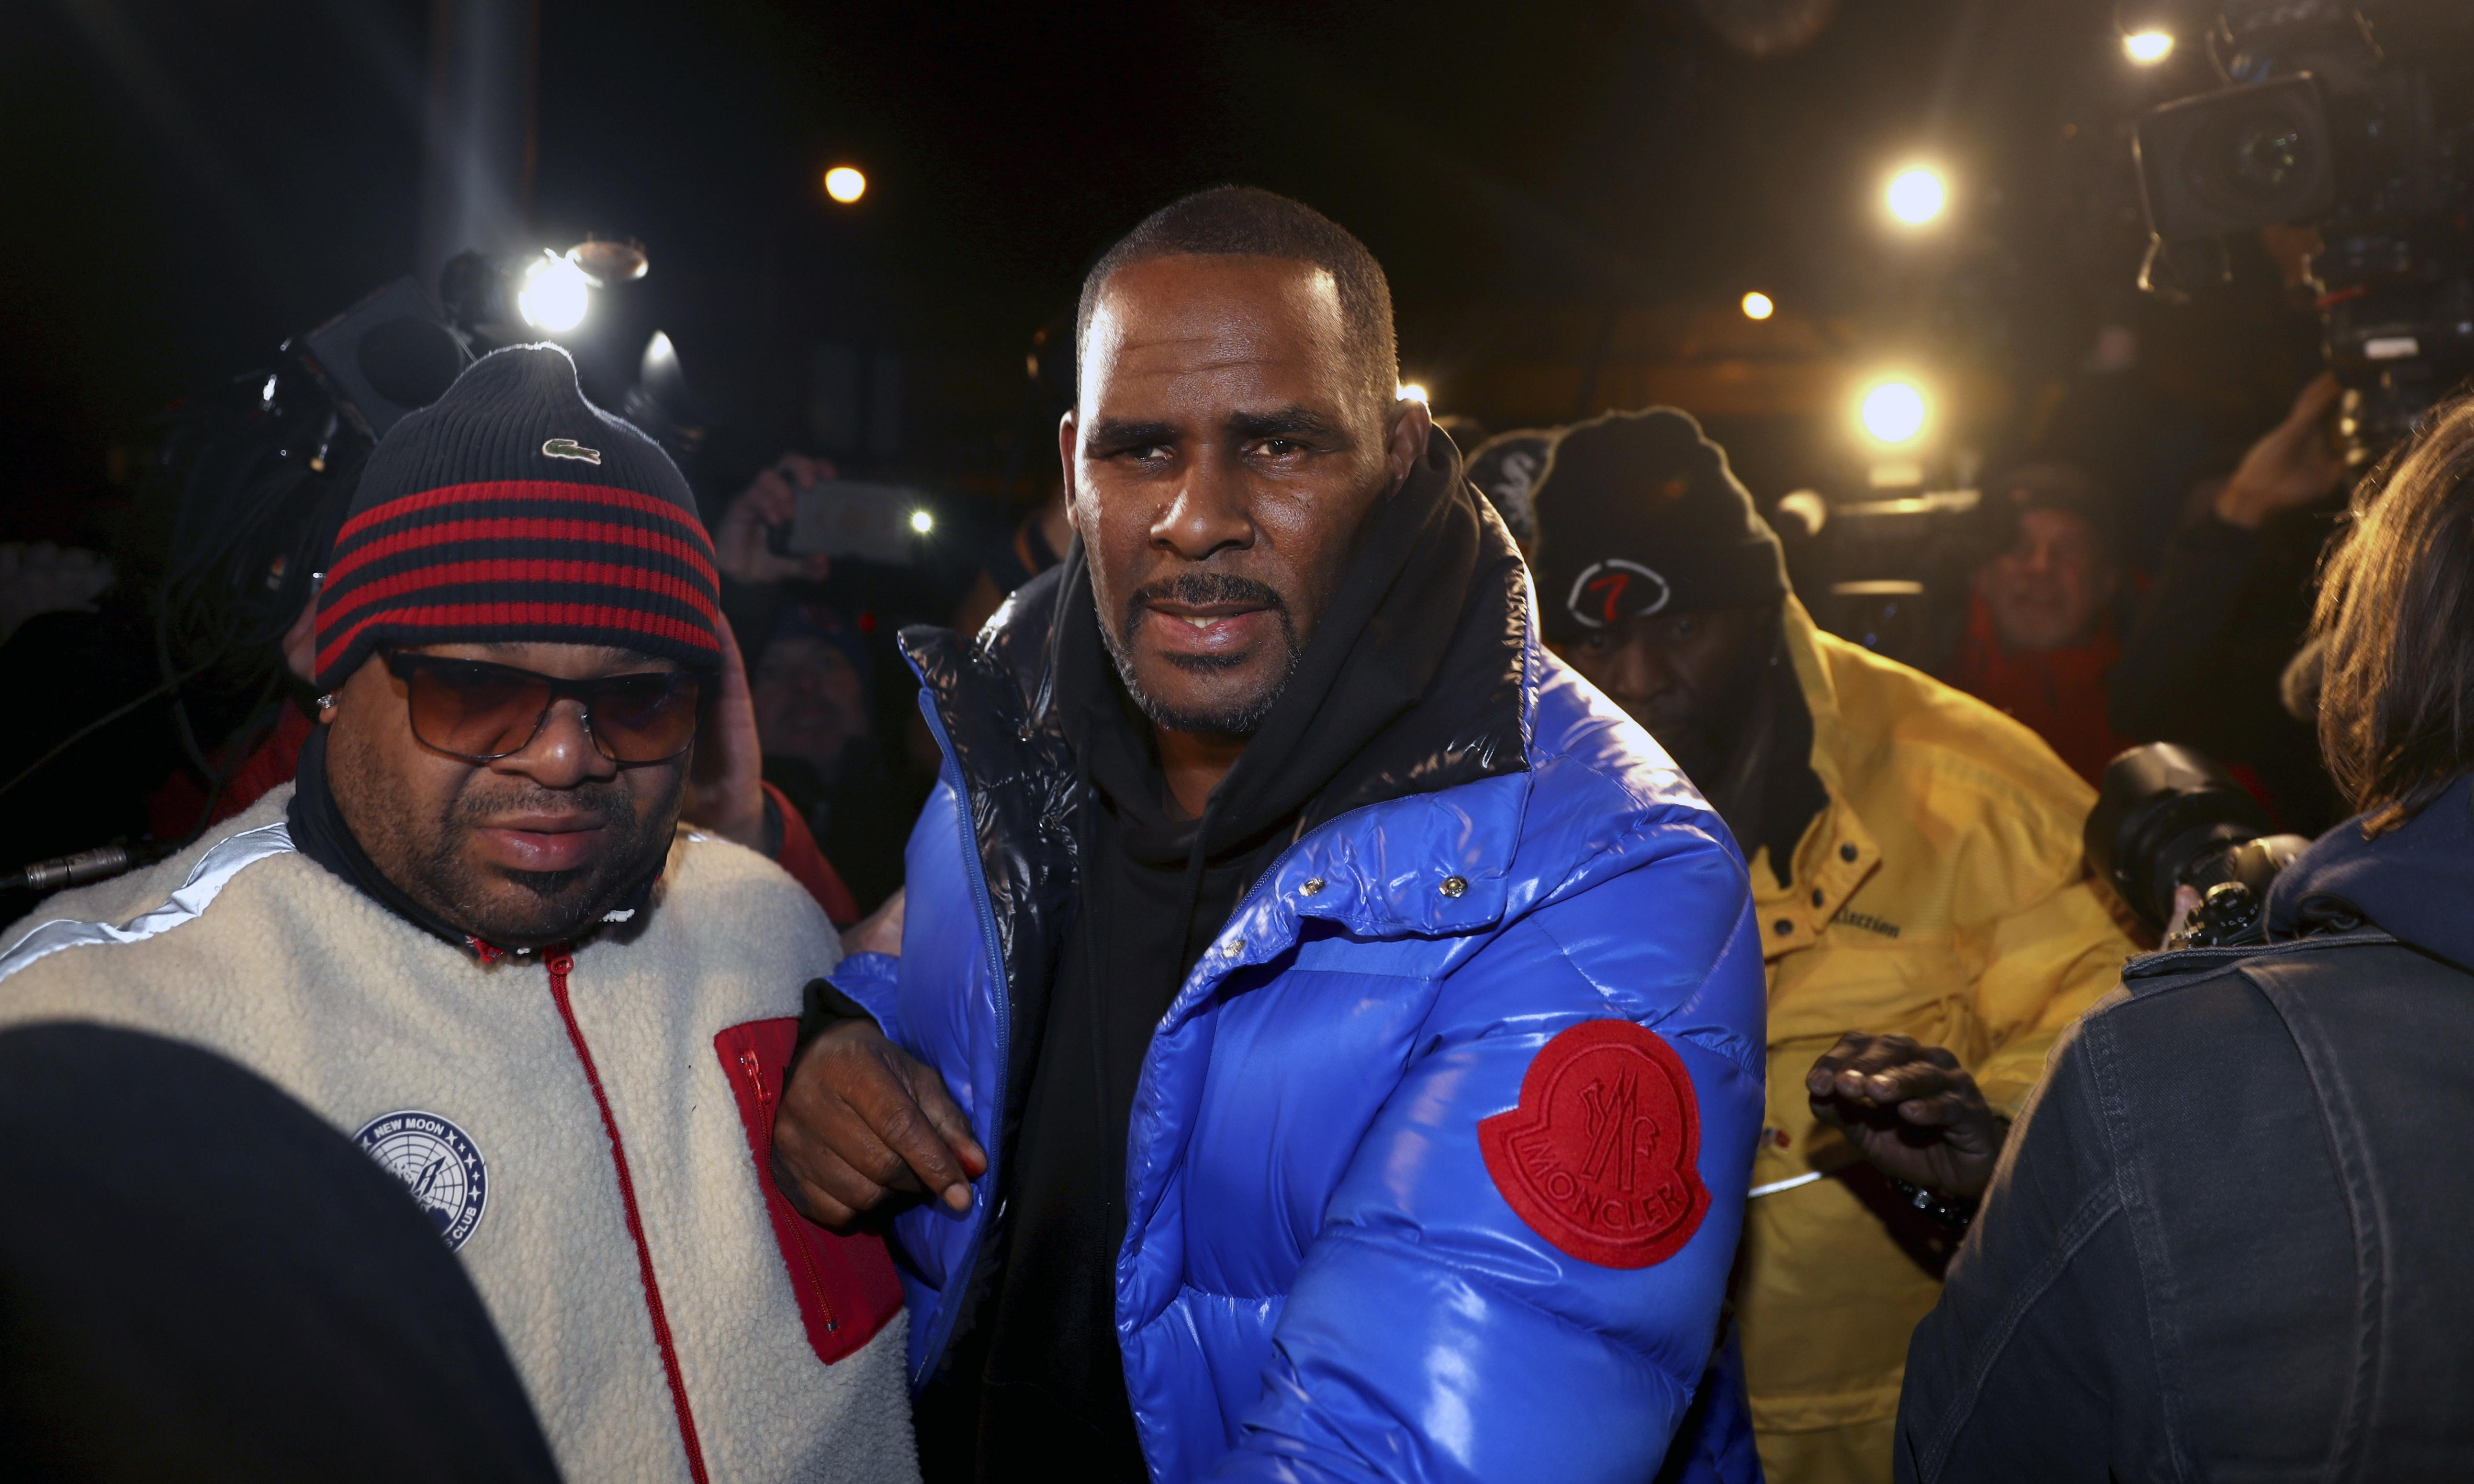 R Kelly in police custody after being charged with 10 counts of sexual abuse